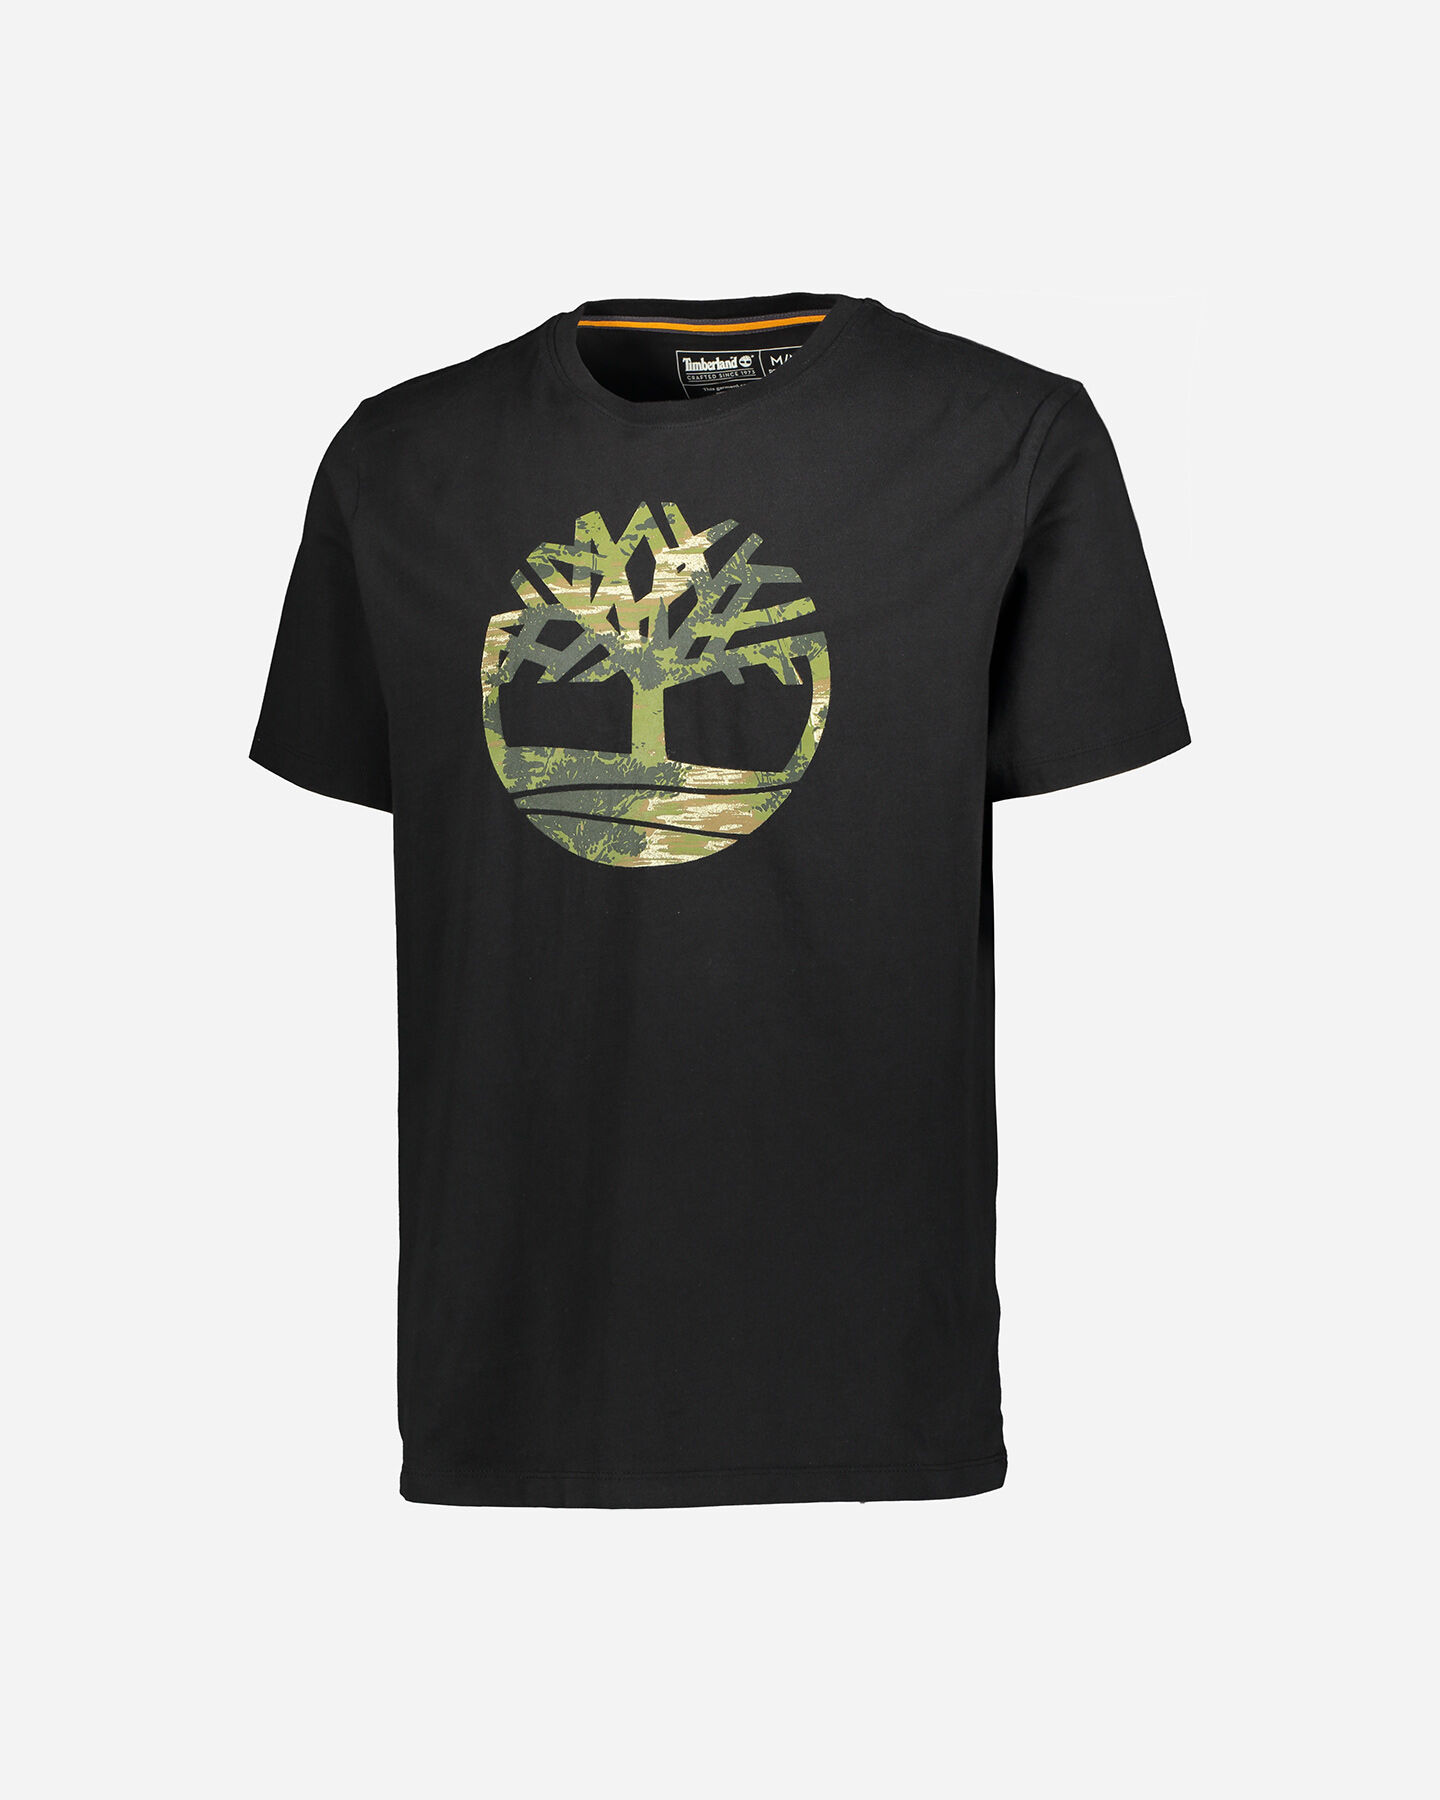 T-Shirt TIMBERLAND CAMO TREE M S4088649 scatto 0